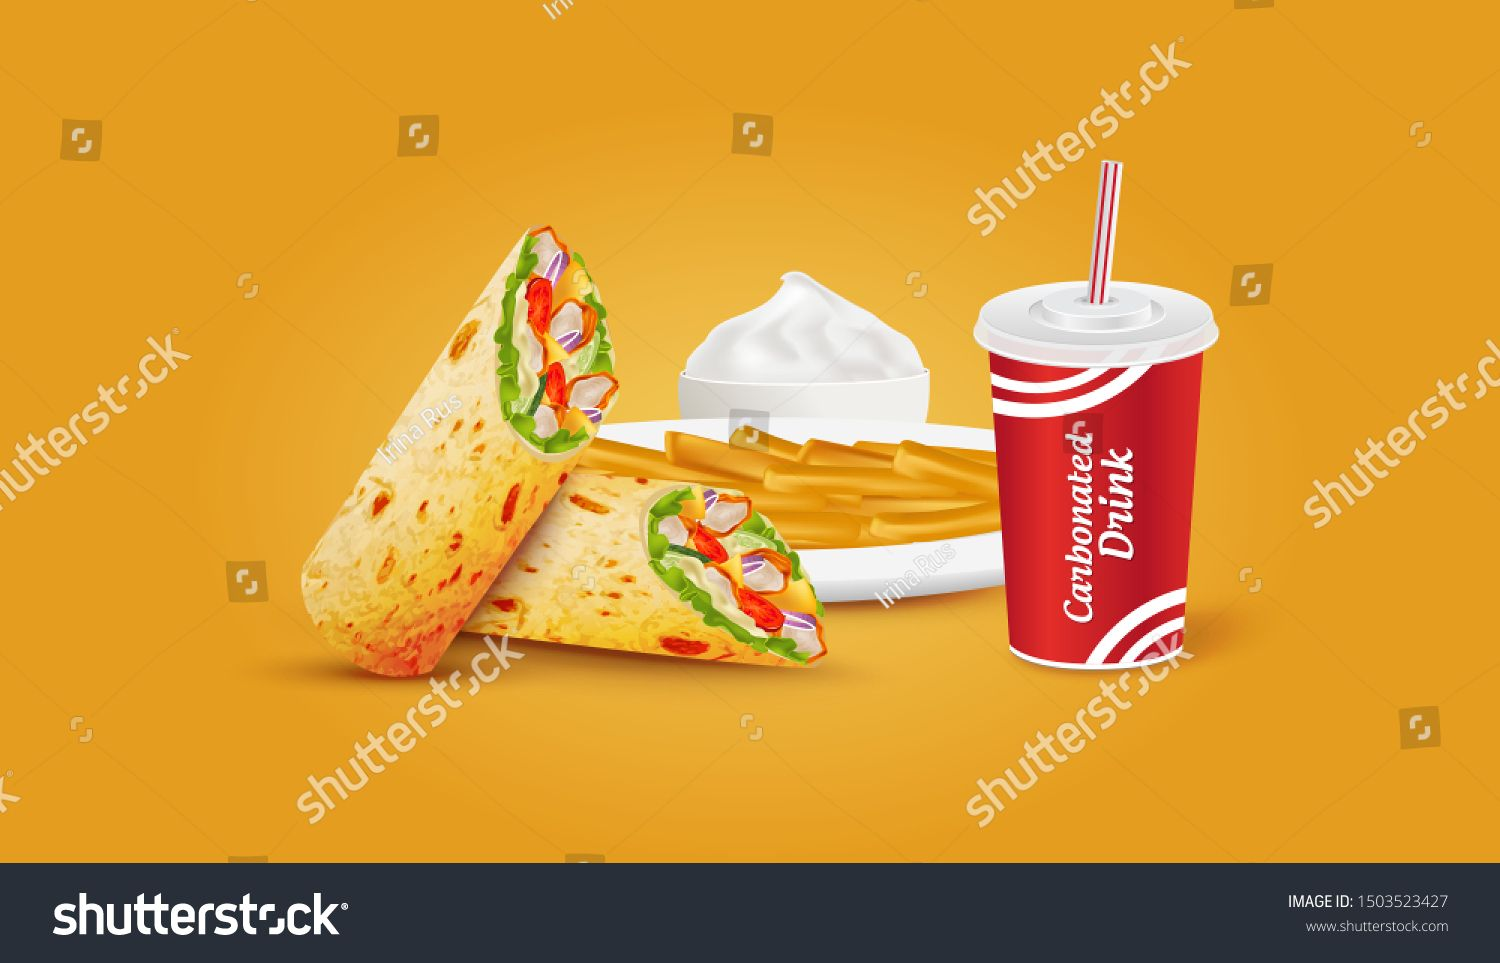 Vector Shawarma French Fries and Drink. Meat and Vegetables. Tacos. Arab food. Pita. Dish. Plate. Sour Cream, Mayonnaise. #Sponsored , #Sponsored, #Meat#Drink#Tacos#Vegetables